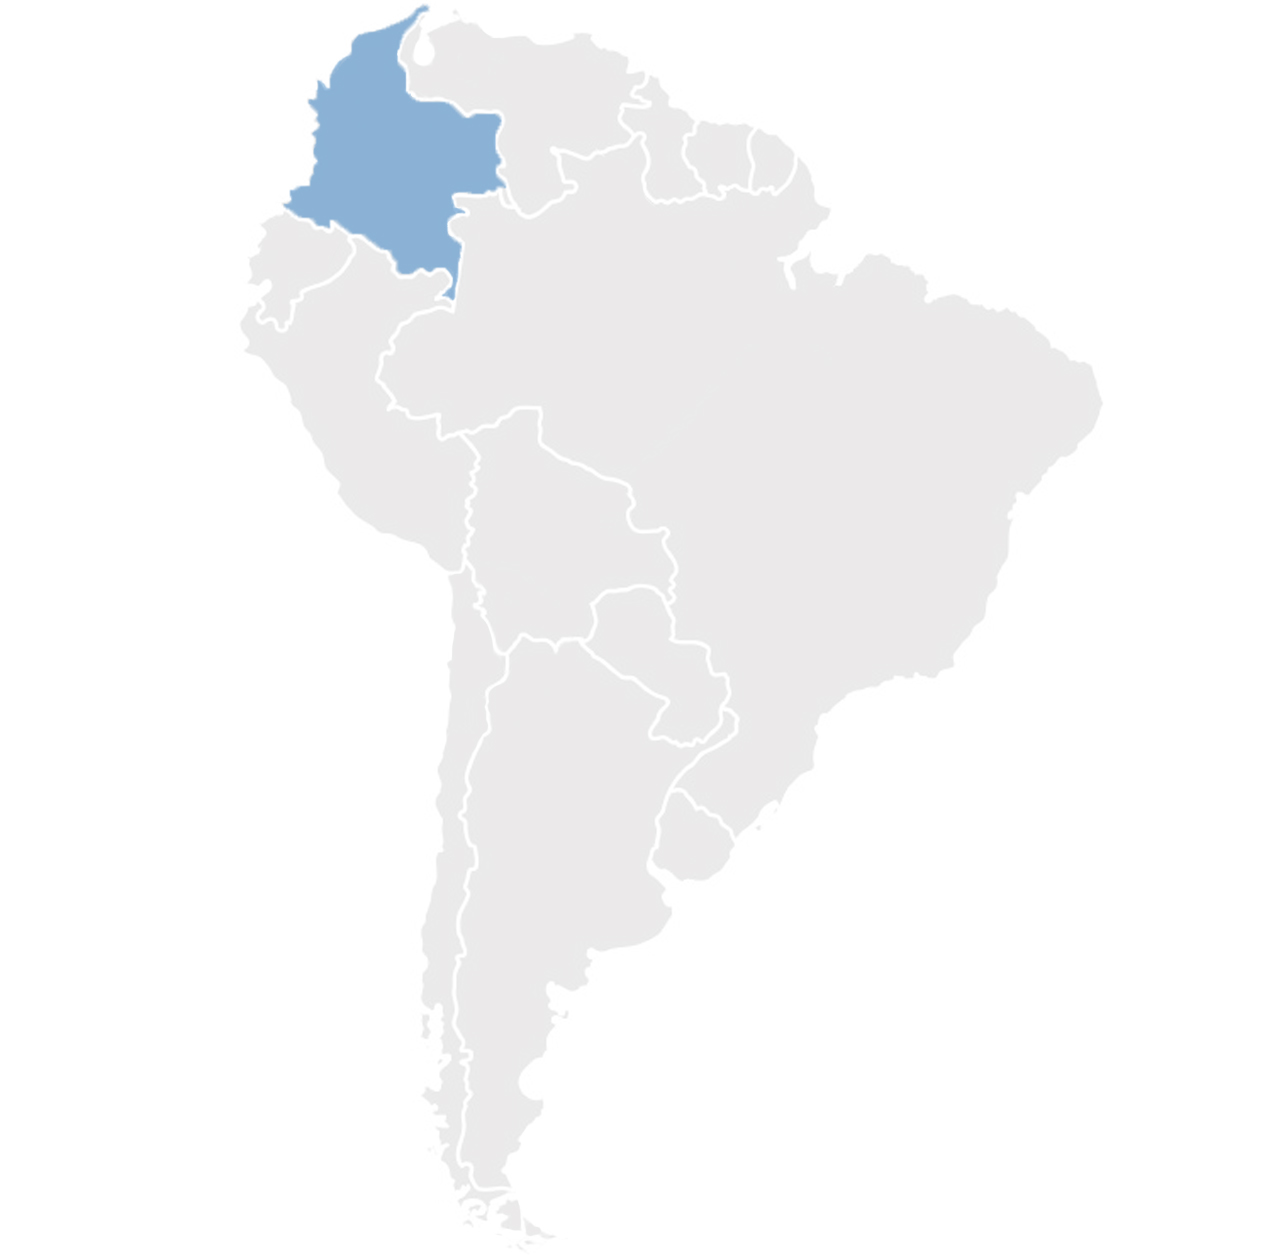 Gray map of South America with Colombia in blue